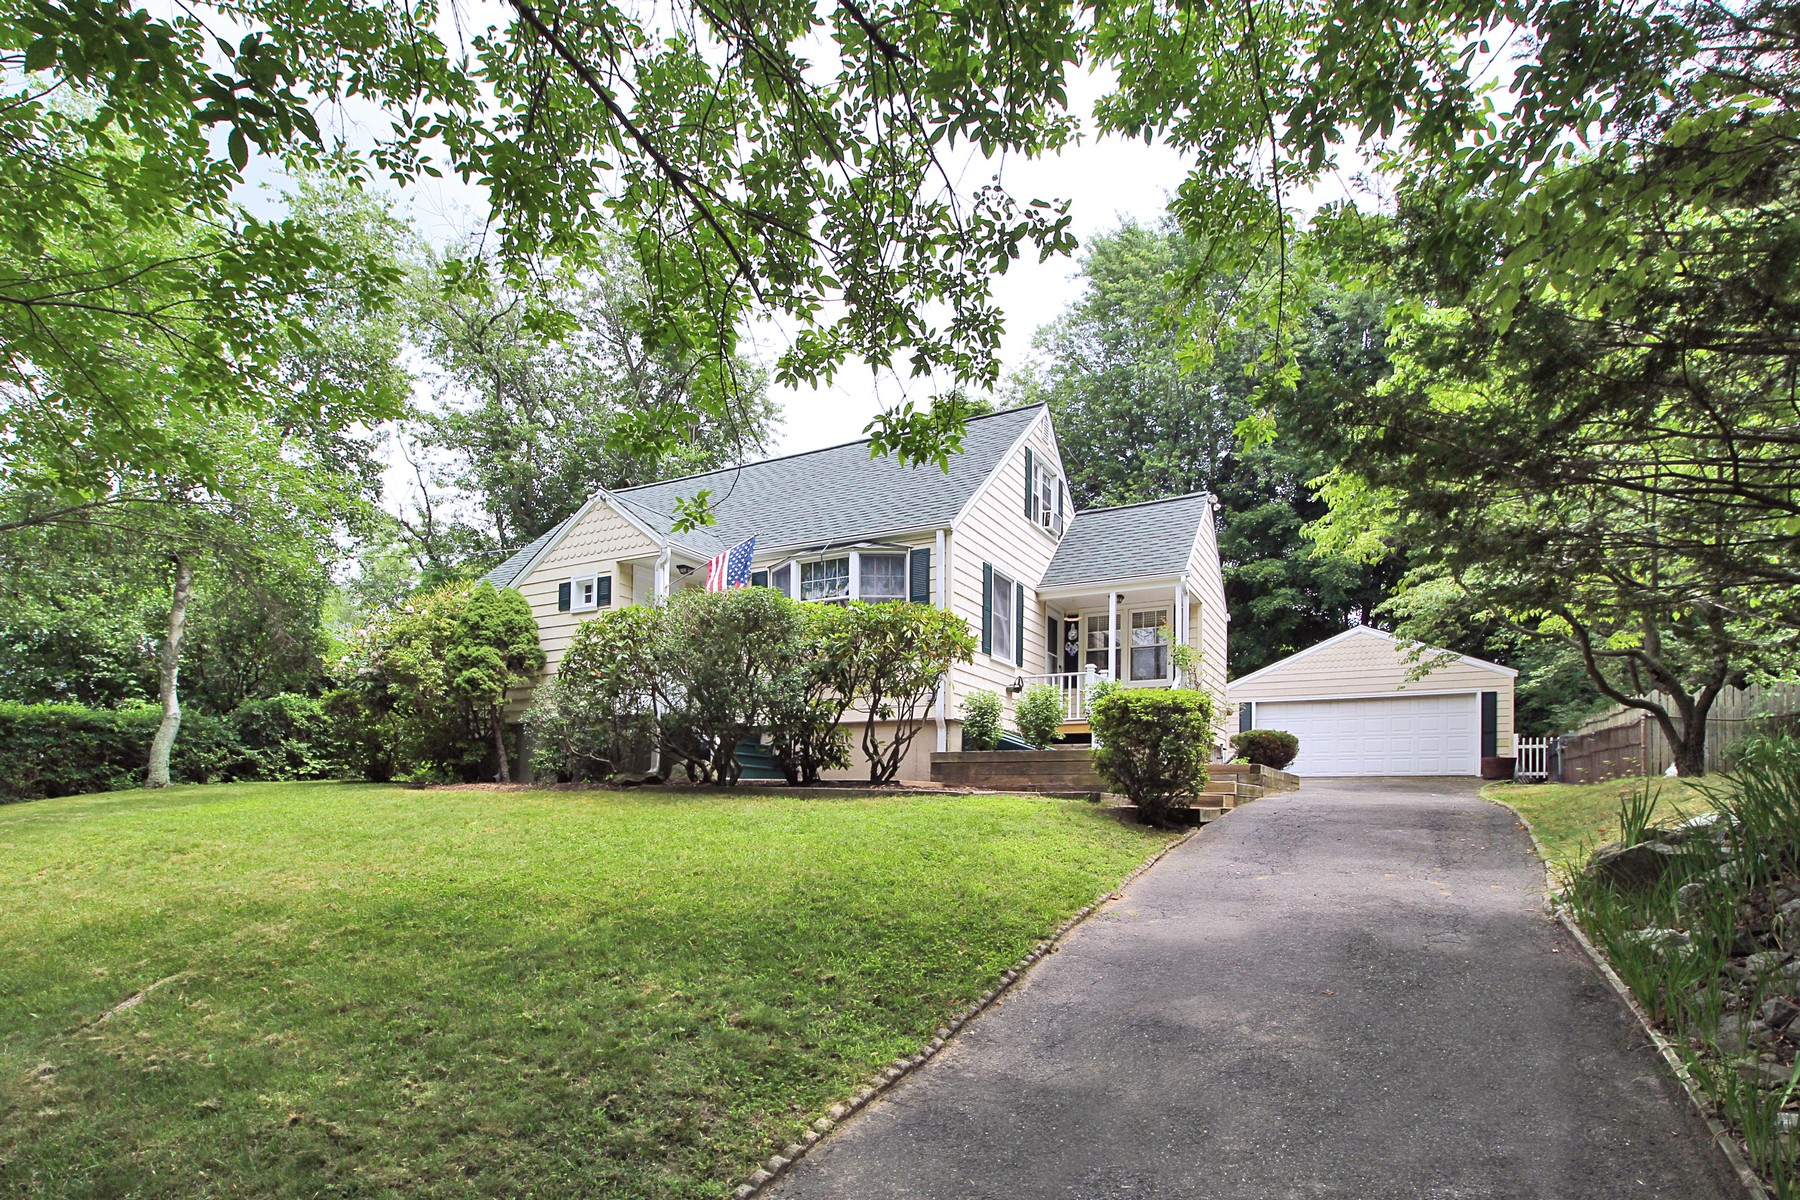 Single Family Home for Sale at Storybook University Area Cape! 86 Valleyview Road Fairfield, Connecticut 06824 United States